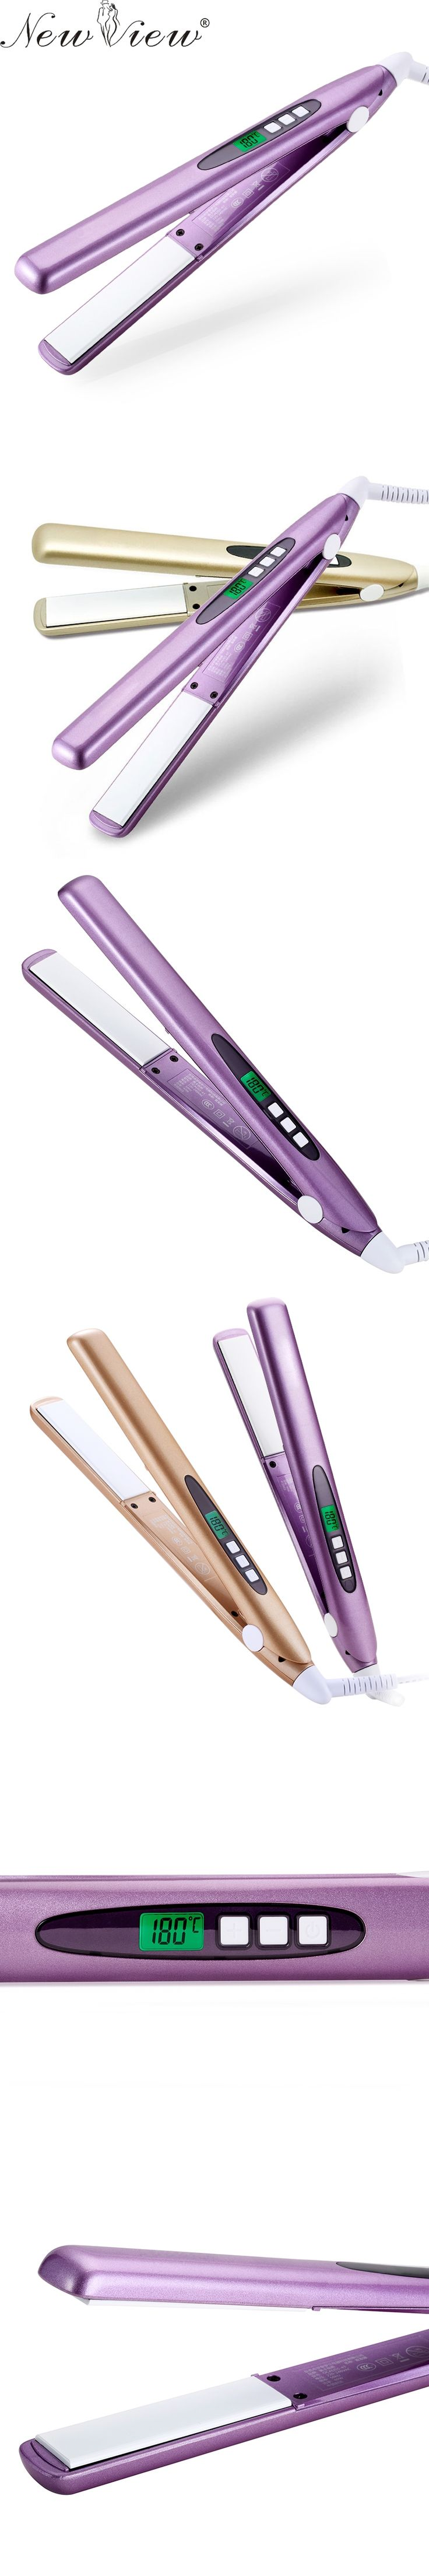 NewView Ceramic Hair Straightener Intelligent LCD Hair Straightening Flat Iron Professional Anion Styling Tools Salon